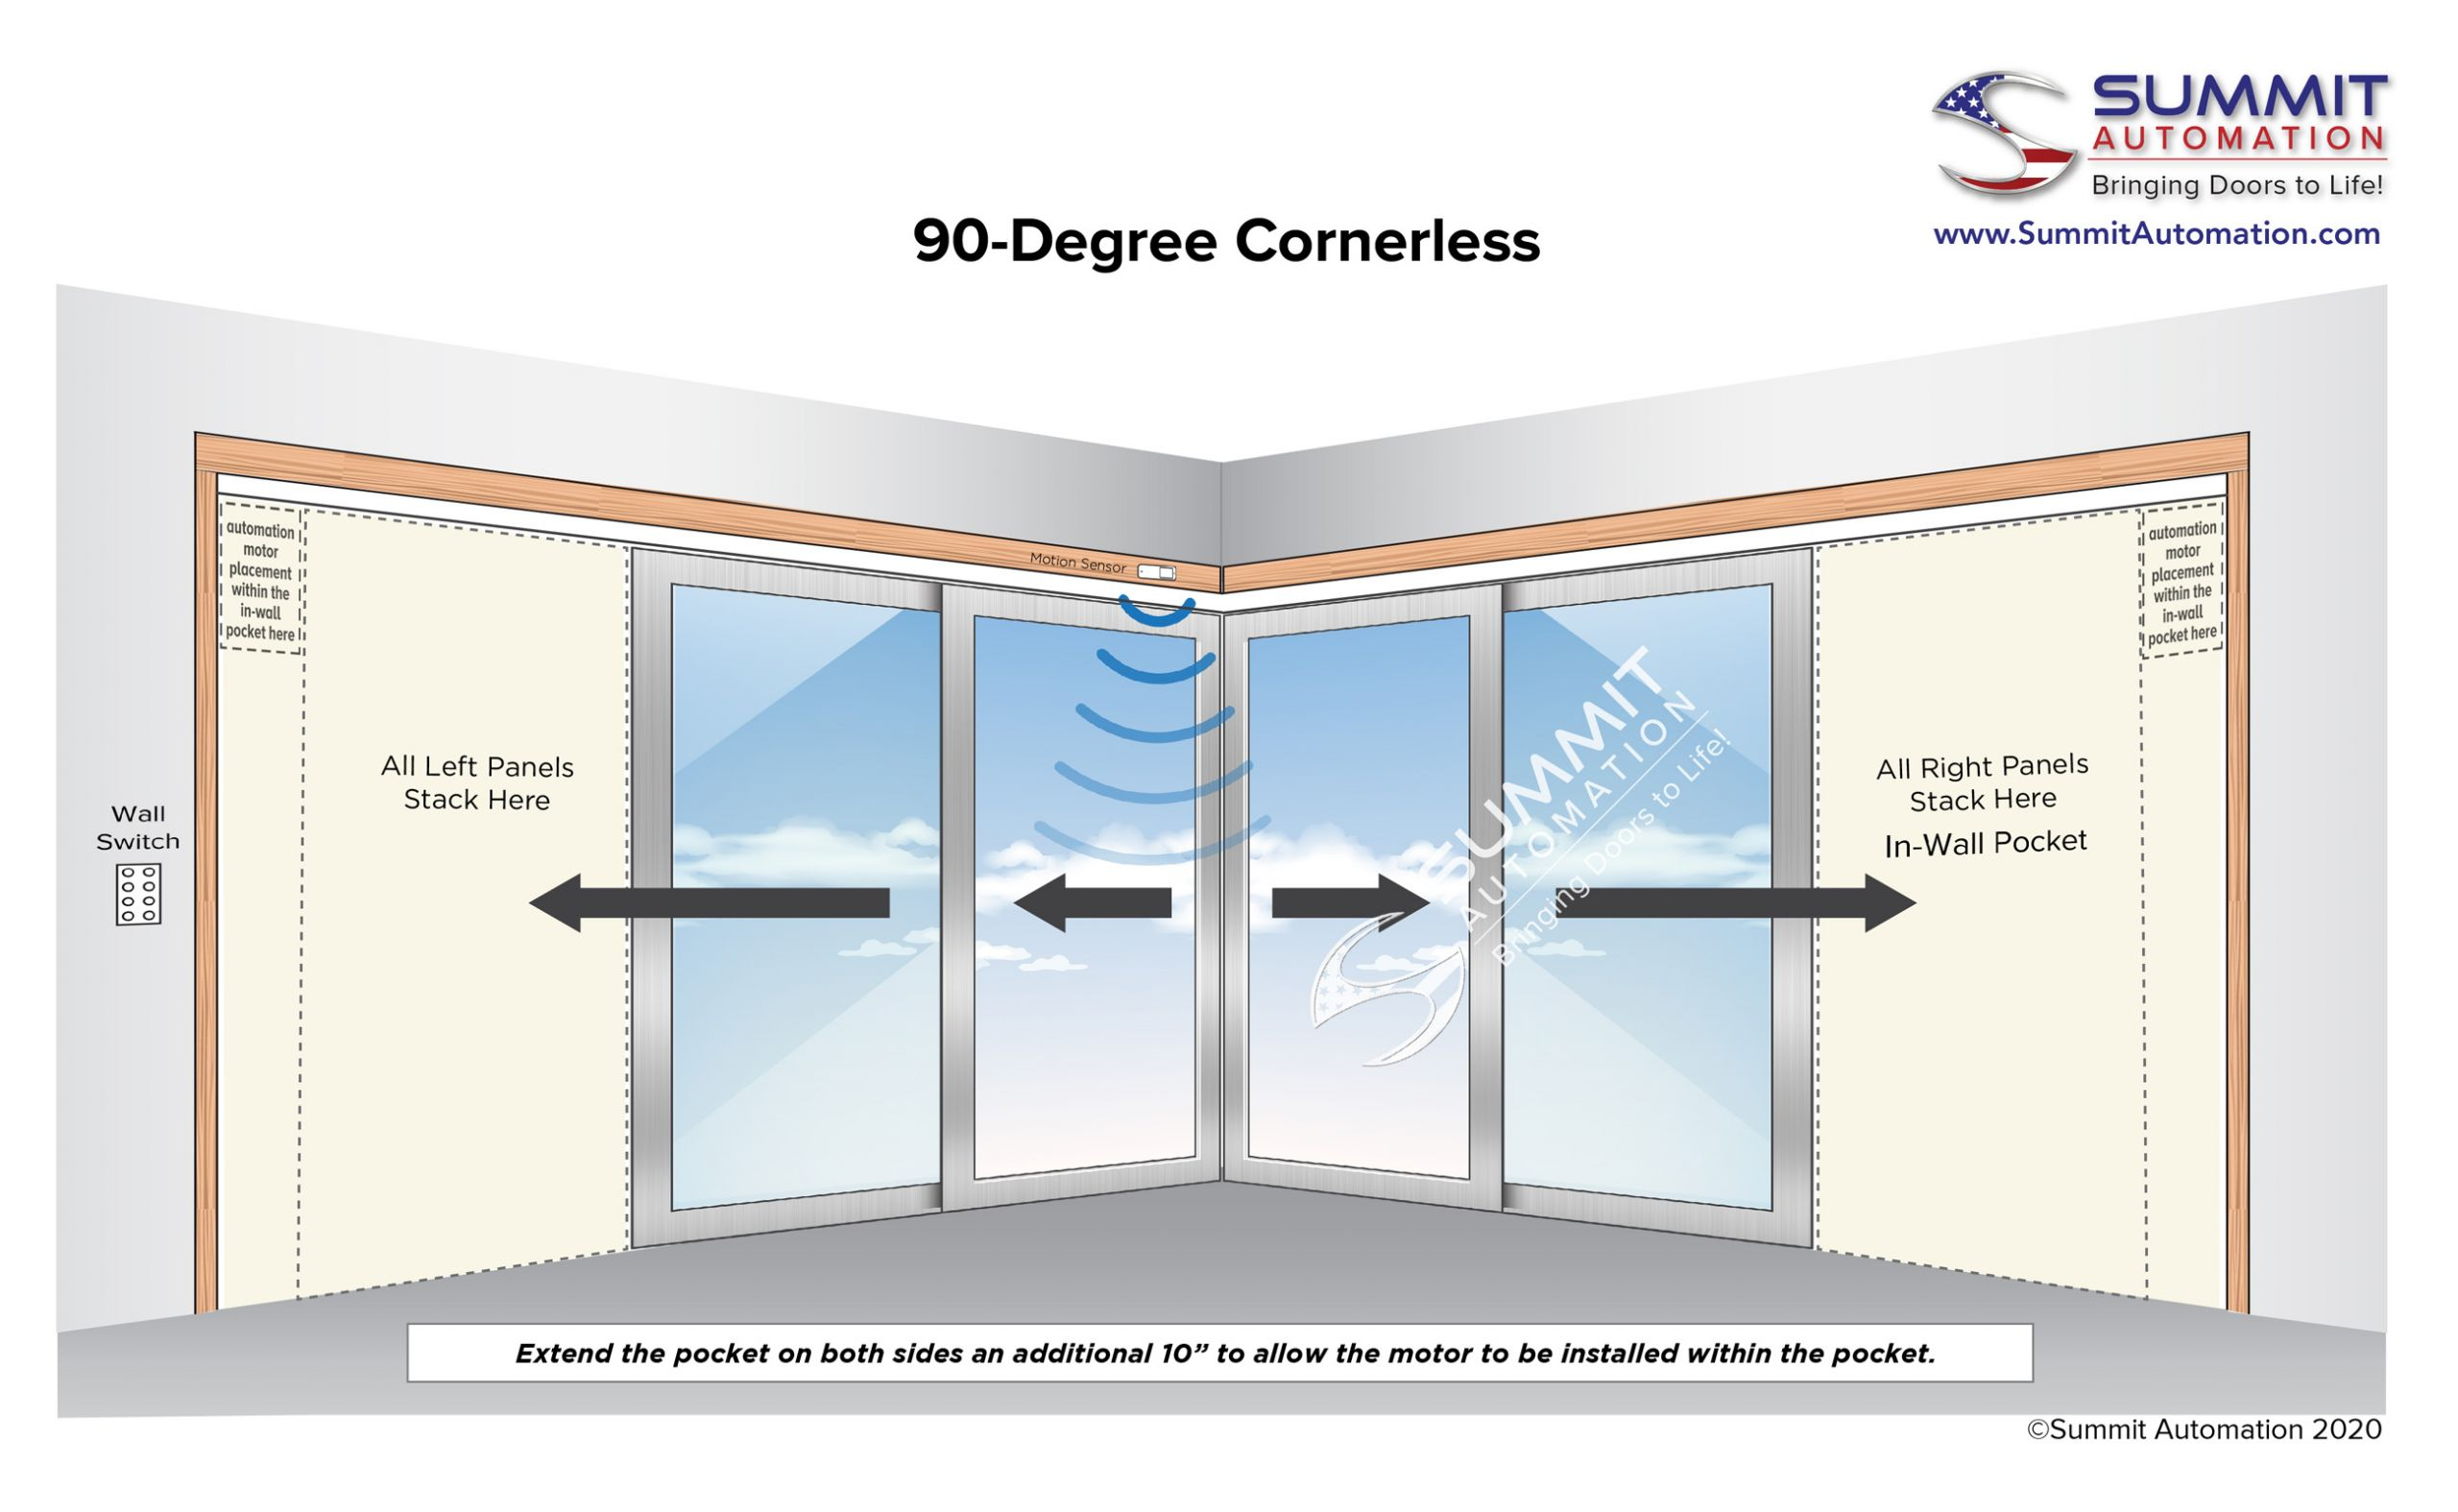 90 degree cornerless doors diagram number 2